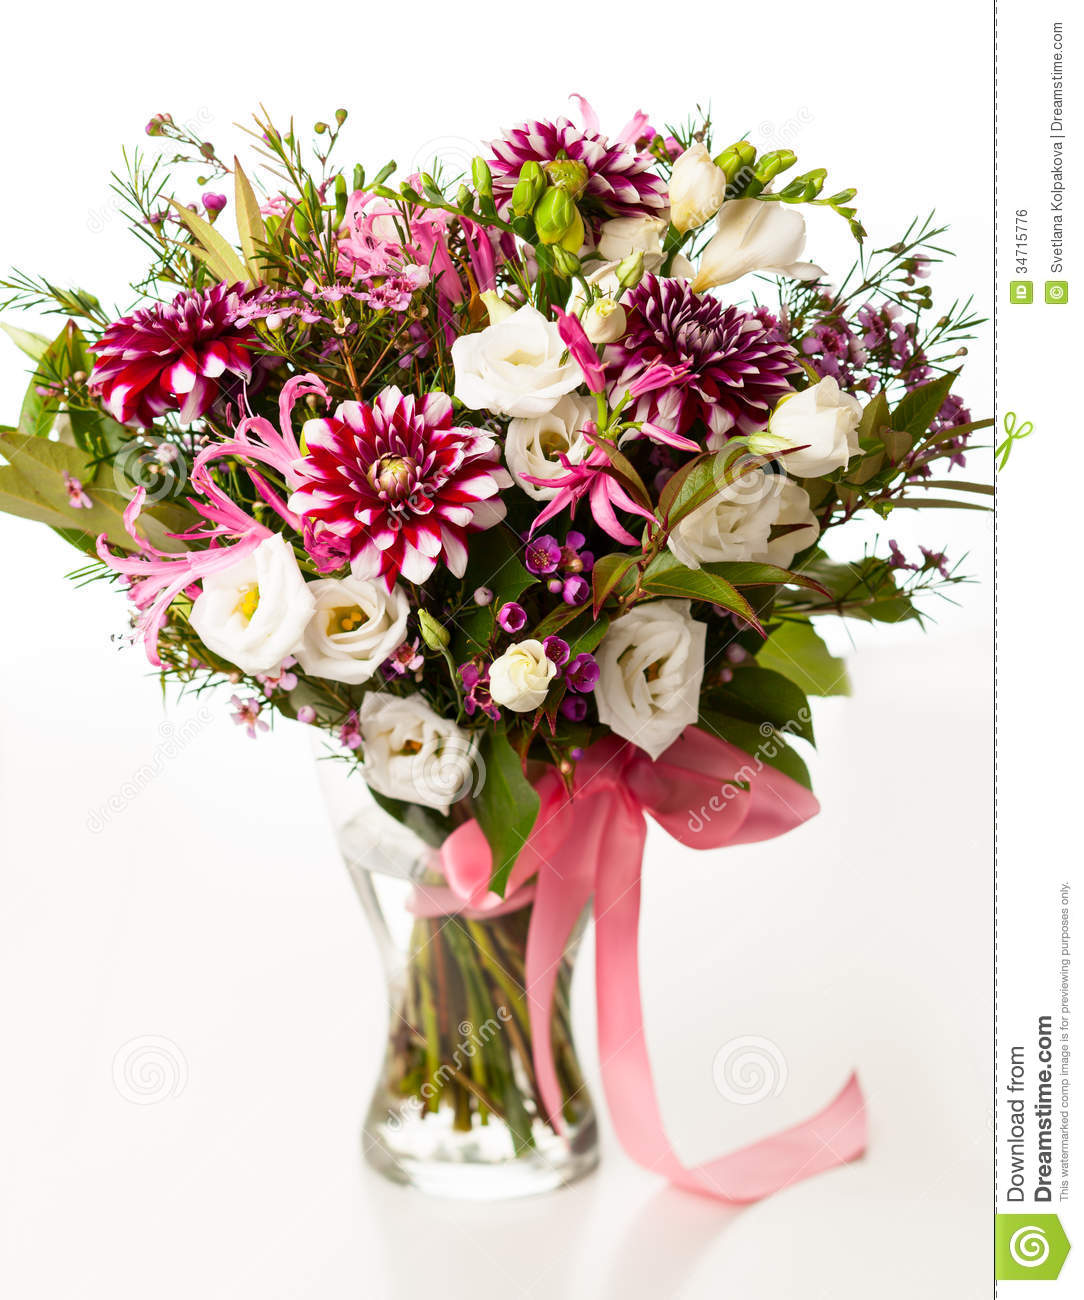 Luxury Bouquet Of Flowers Images Free